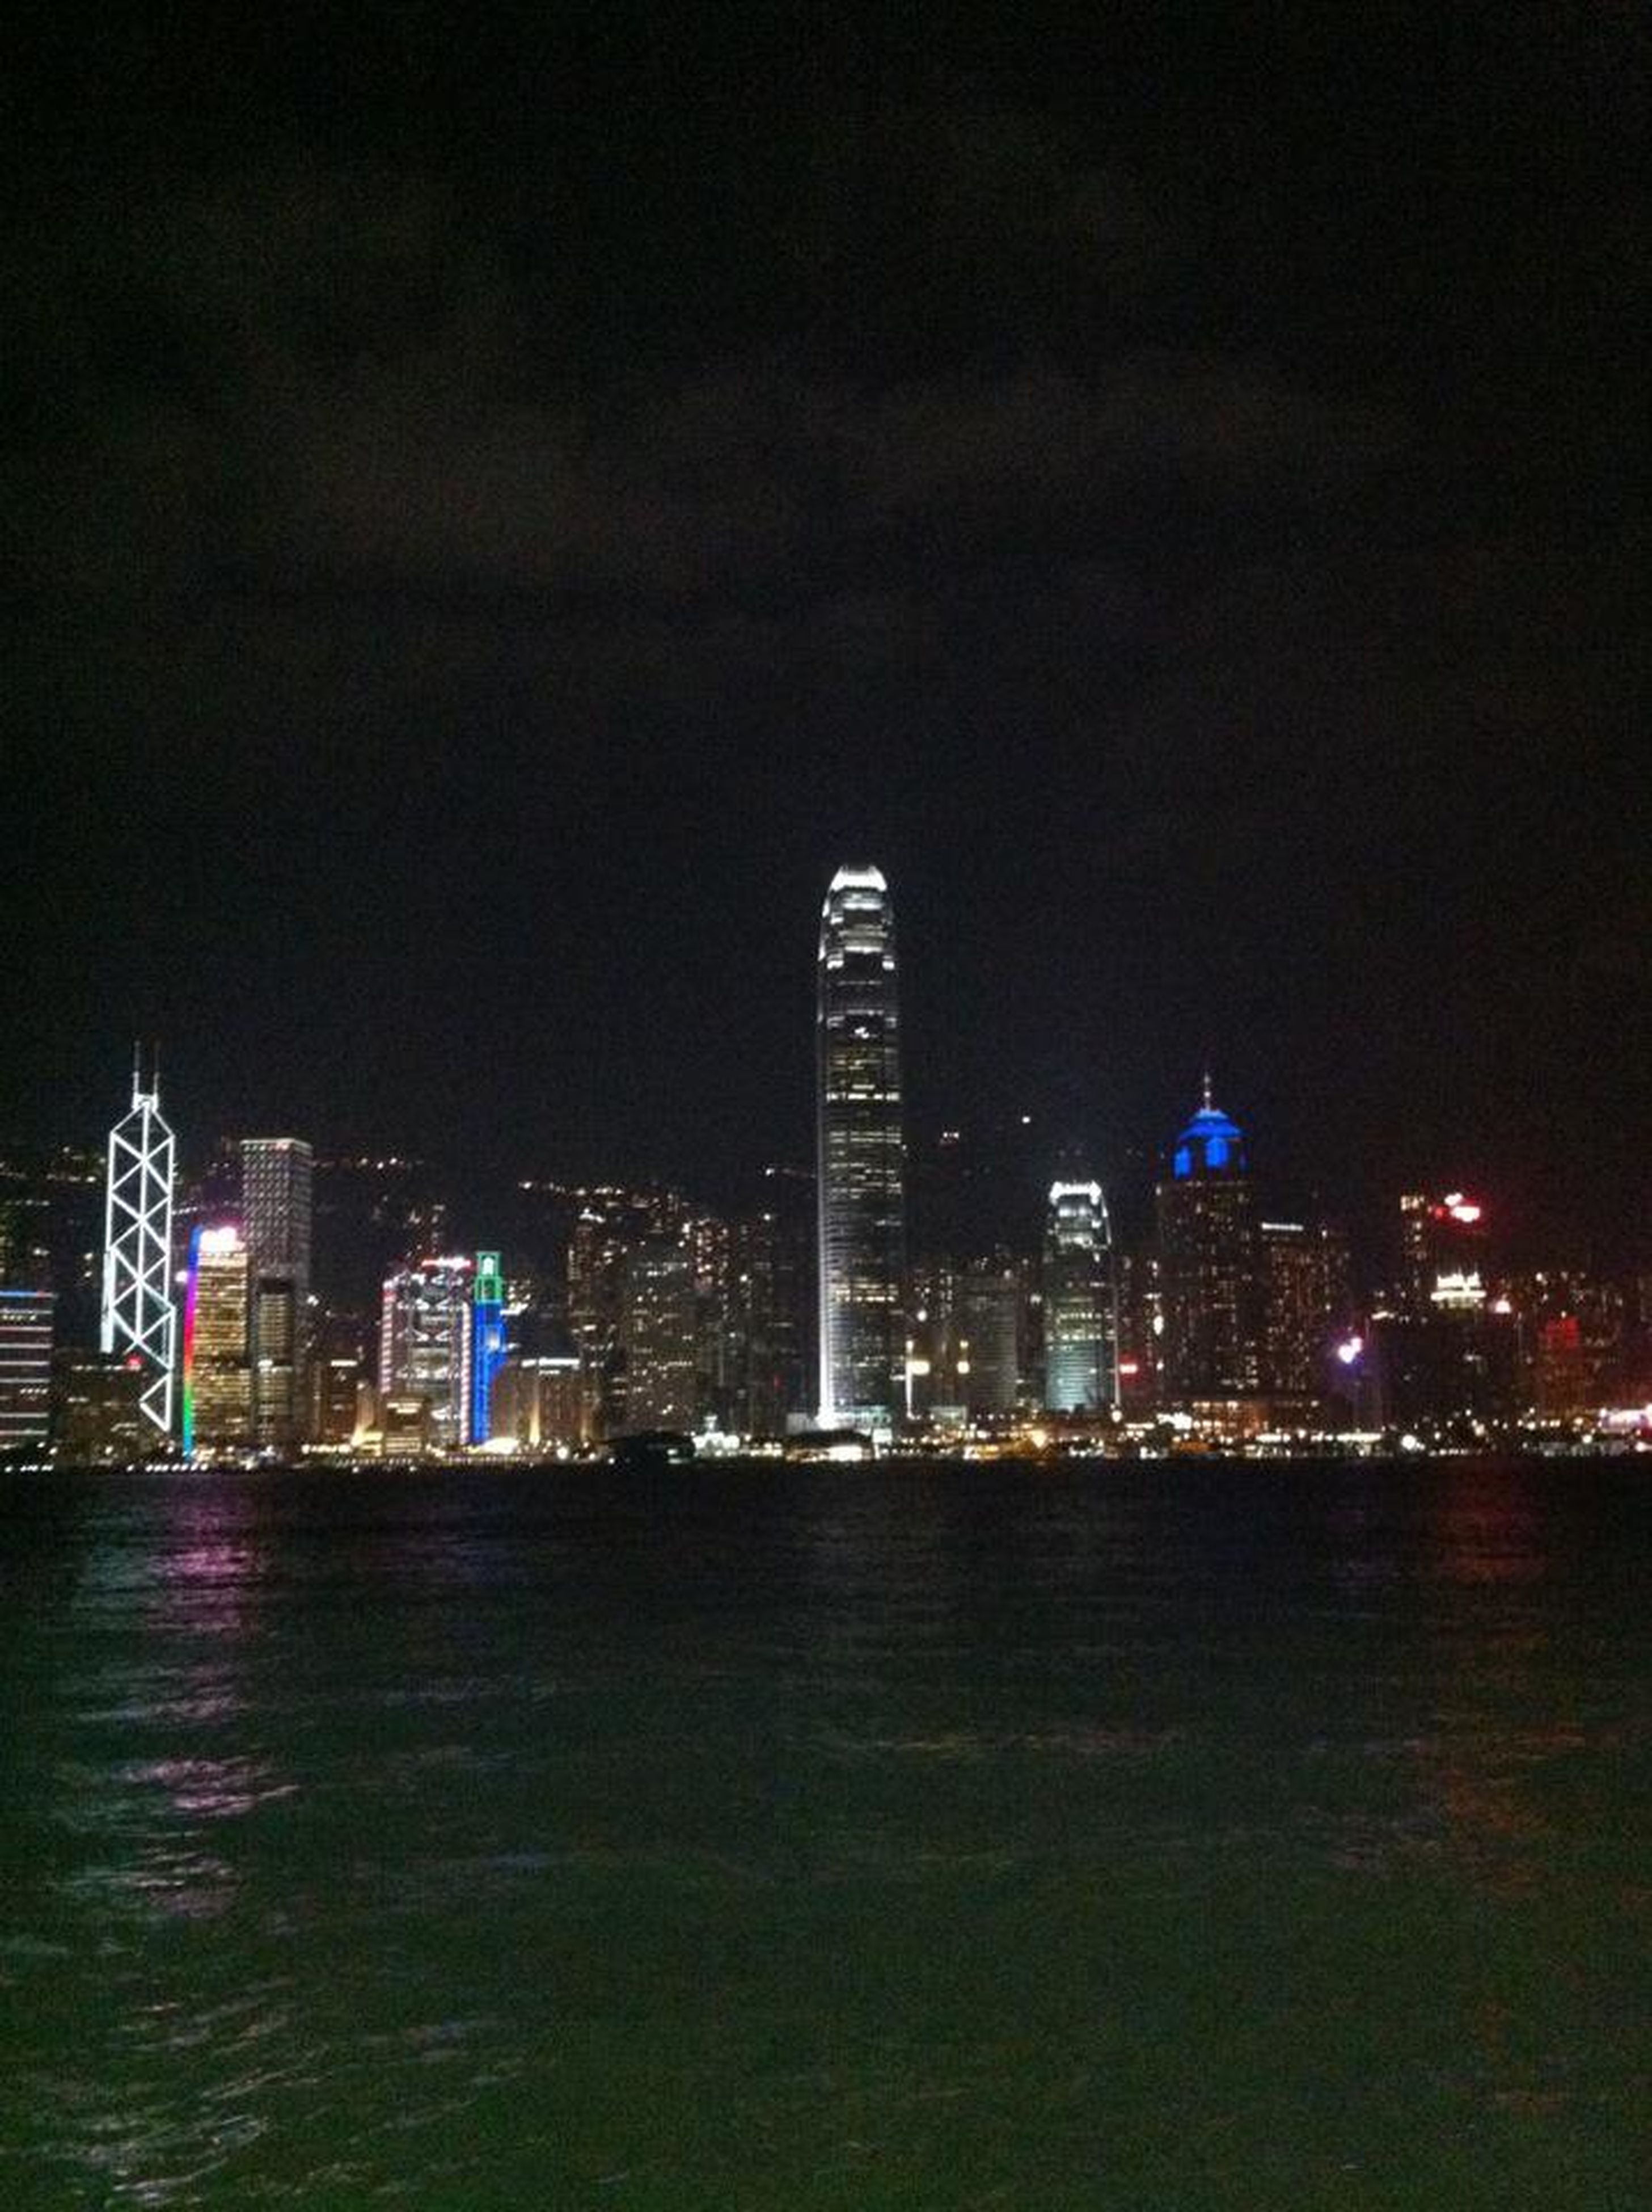 illuminated, night, city, building exterior, architecture, skyscraper, built structure, cityscape, modern, urban skyline, waterfront, tall - high, tower, water, office building, sky, sea, financial district, river, capital cities